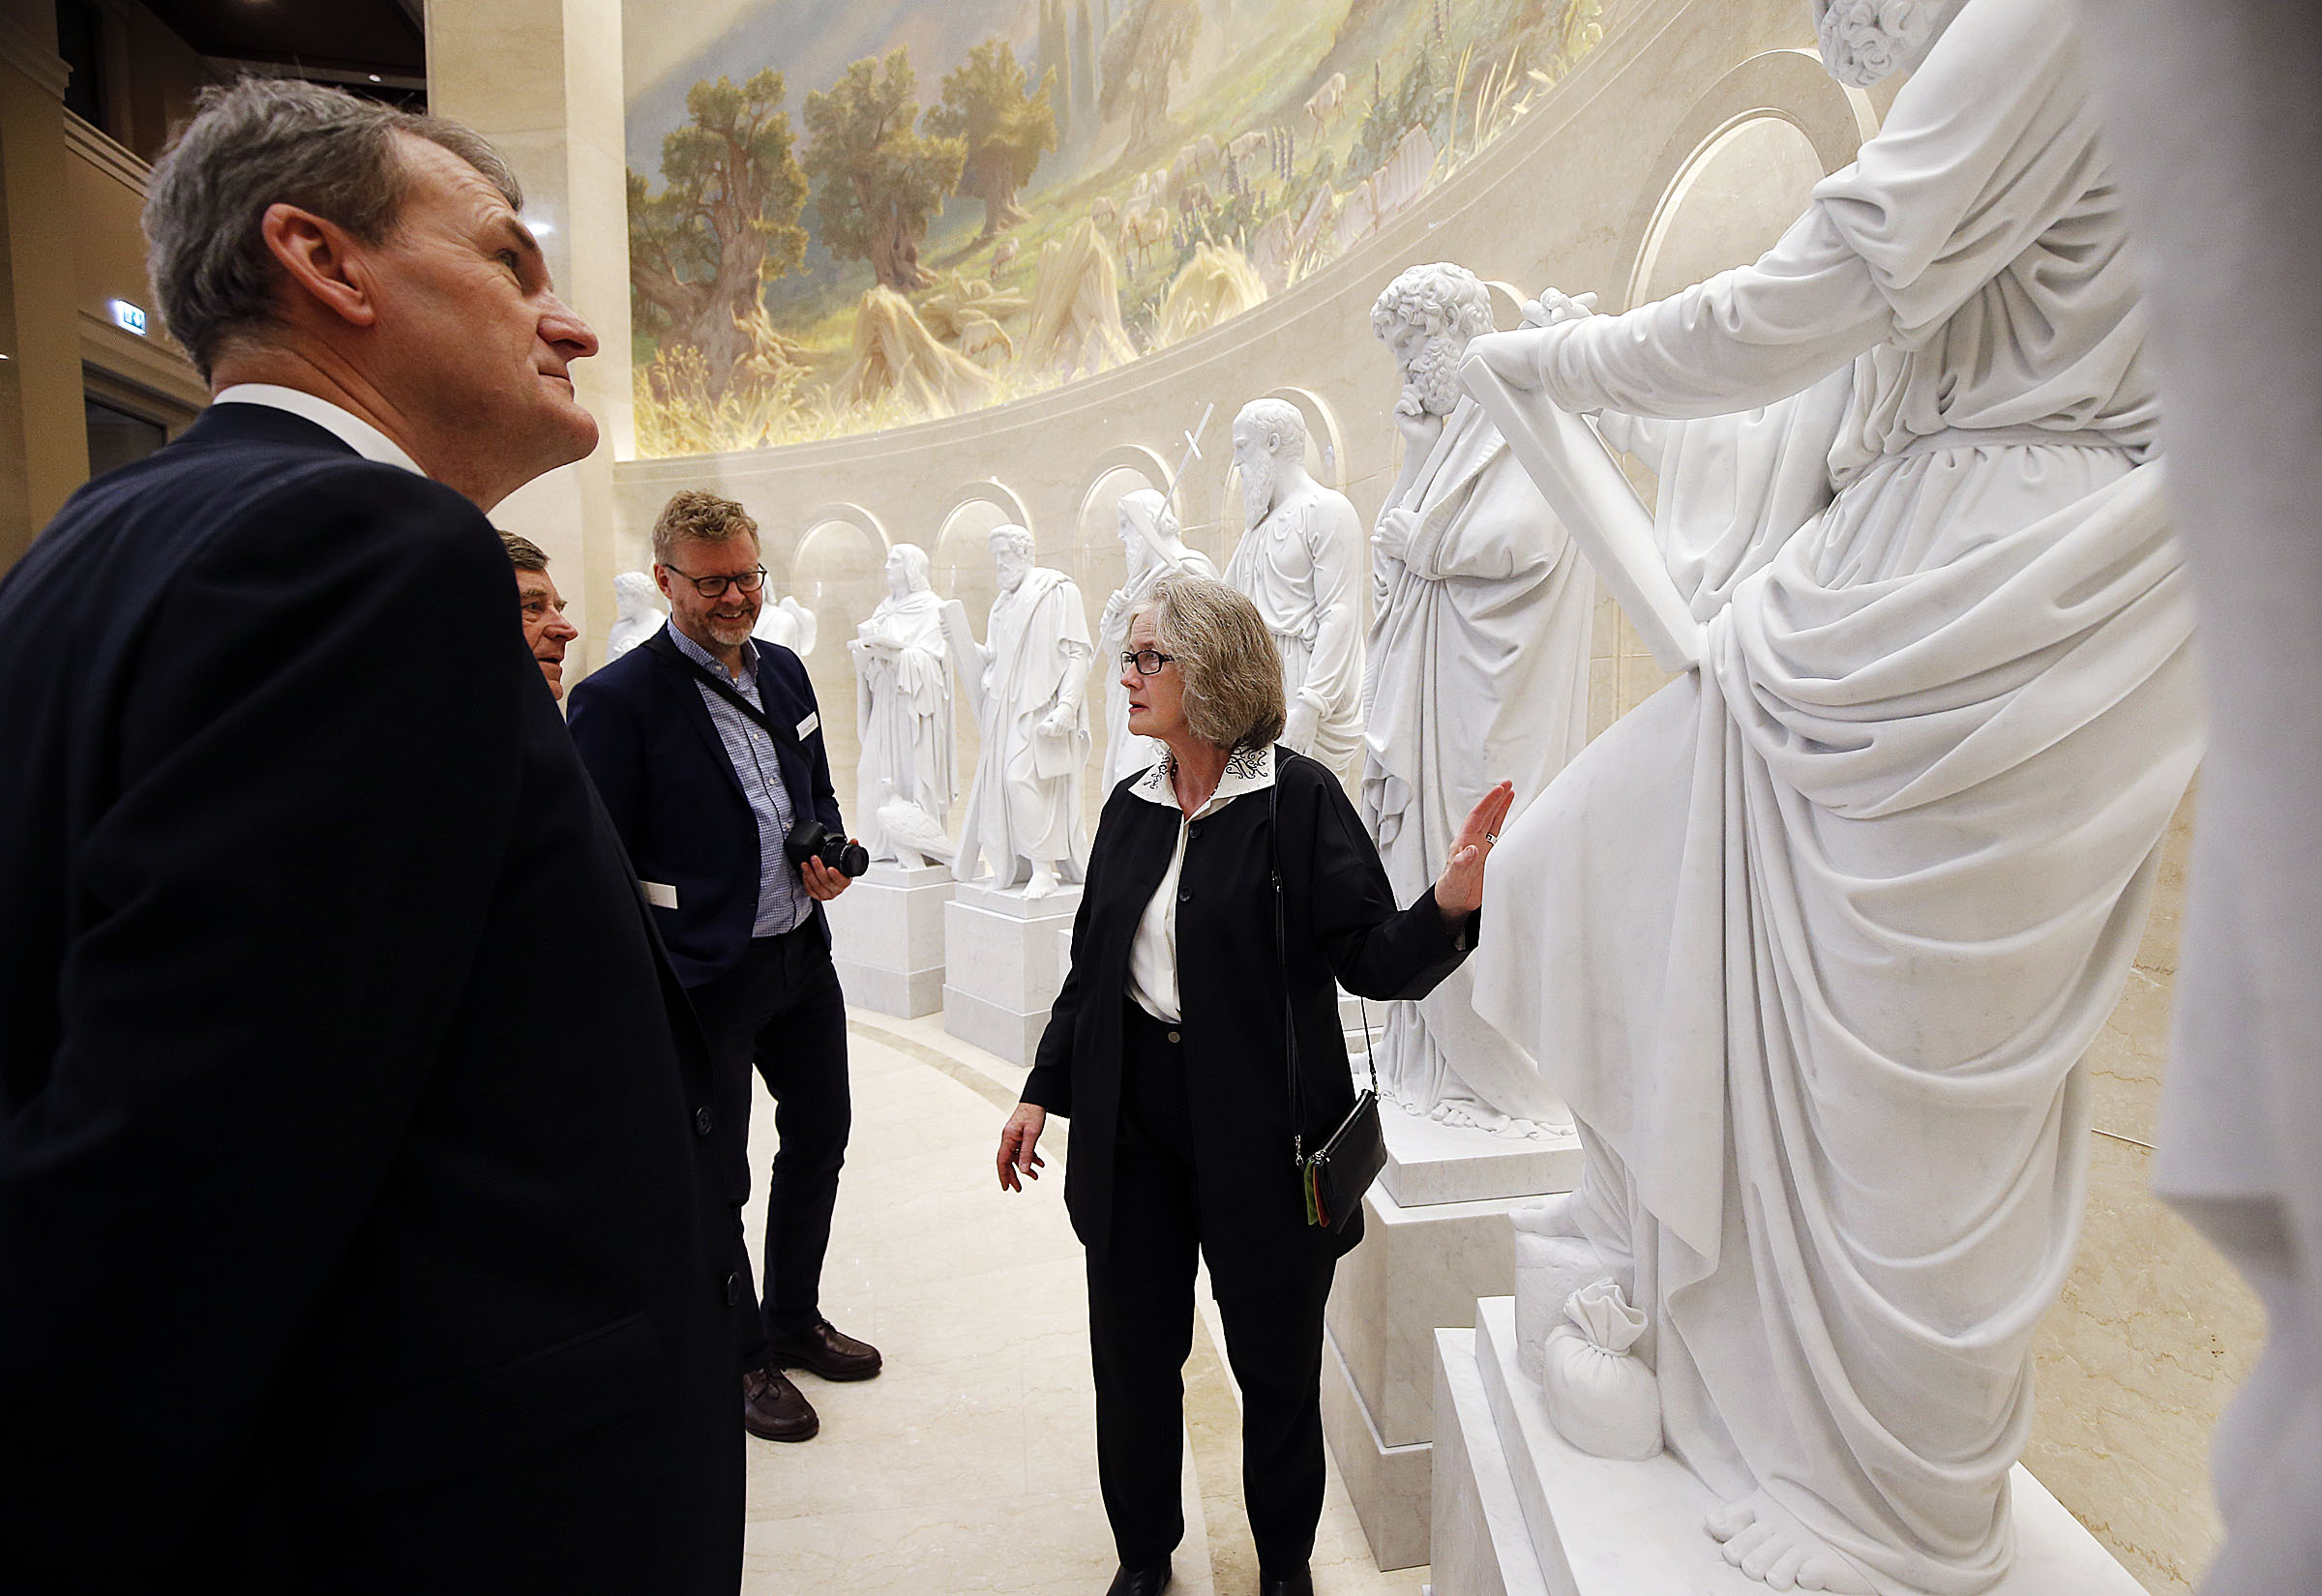 Vicar priest Steffen Ringgaard Andresen, architect Niels Valentiner and Jonas Bencard listen as Susanne Torgard, curator at the Church of Our Lady in Copenhagen, Denmark, talks about the digital, 3-D marble replicas of the ancient apostles at the Rome Temple Visitors' Center in Rome, Italy, on Wednesday, Jan. 16, 2019. The Church of Our Lady home to the original statues.